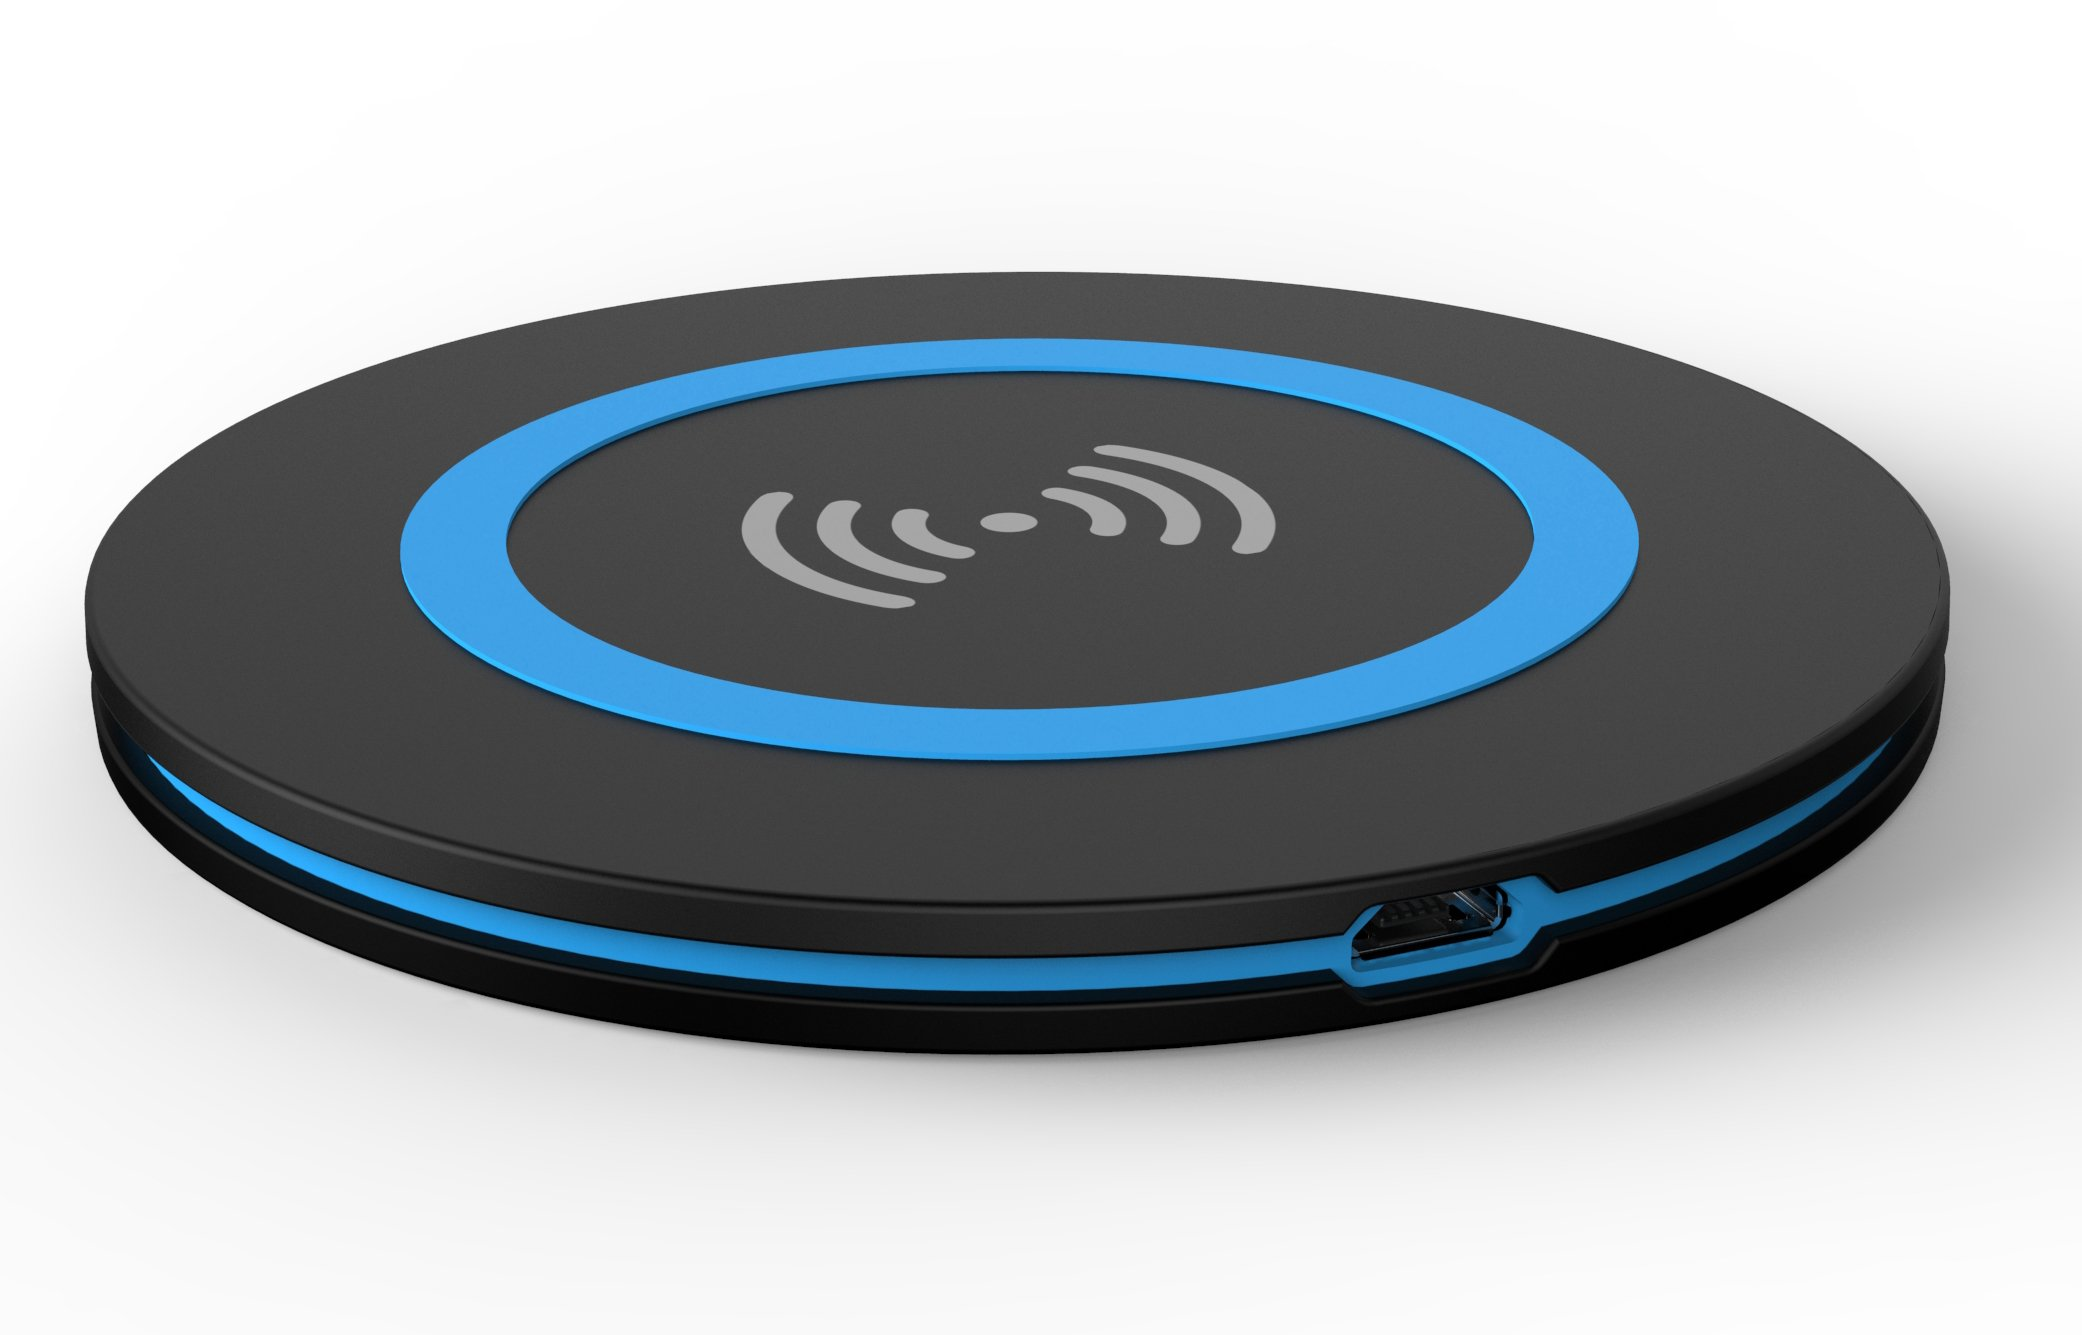 V-CEN WS1 Portable and Thin Wireless Charger Stand for Android, Windows and QI-enabled Devices